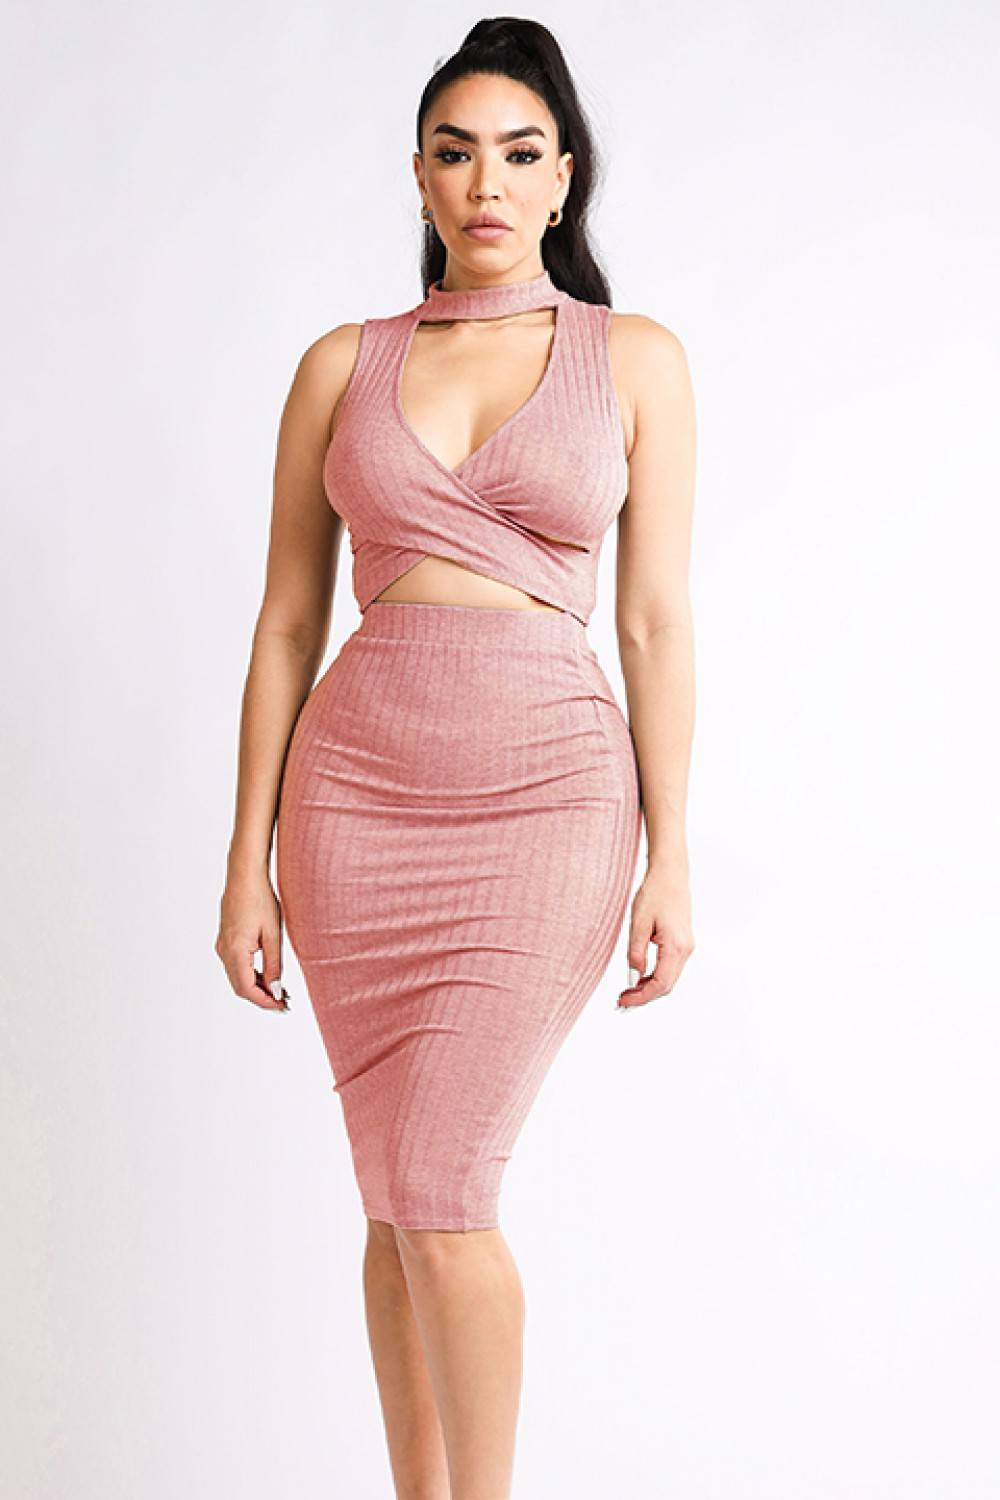 Halter Top & Skirt Set - Boujee Boutique Incorporated